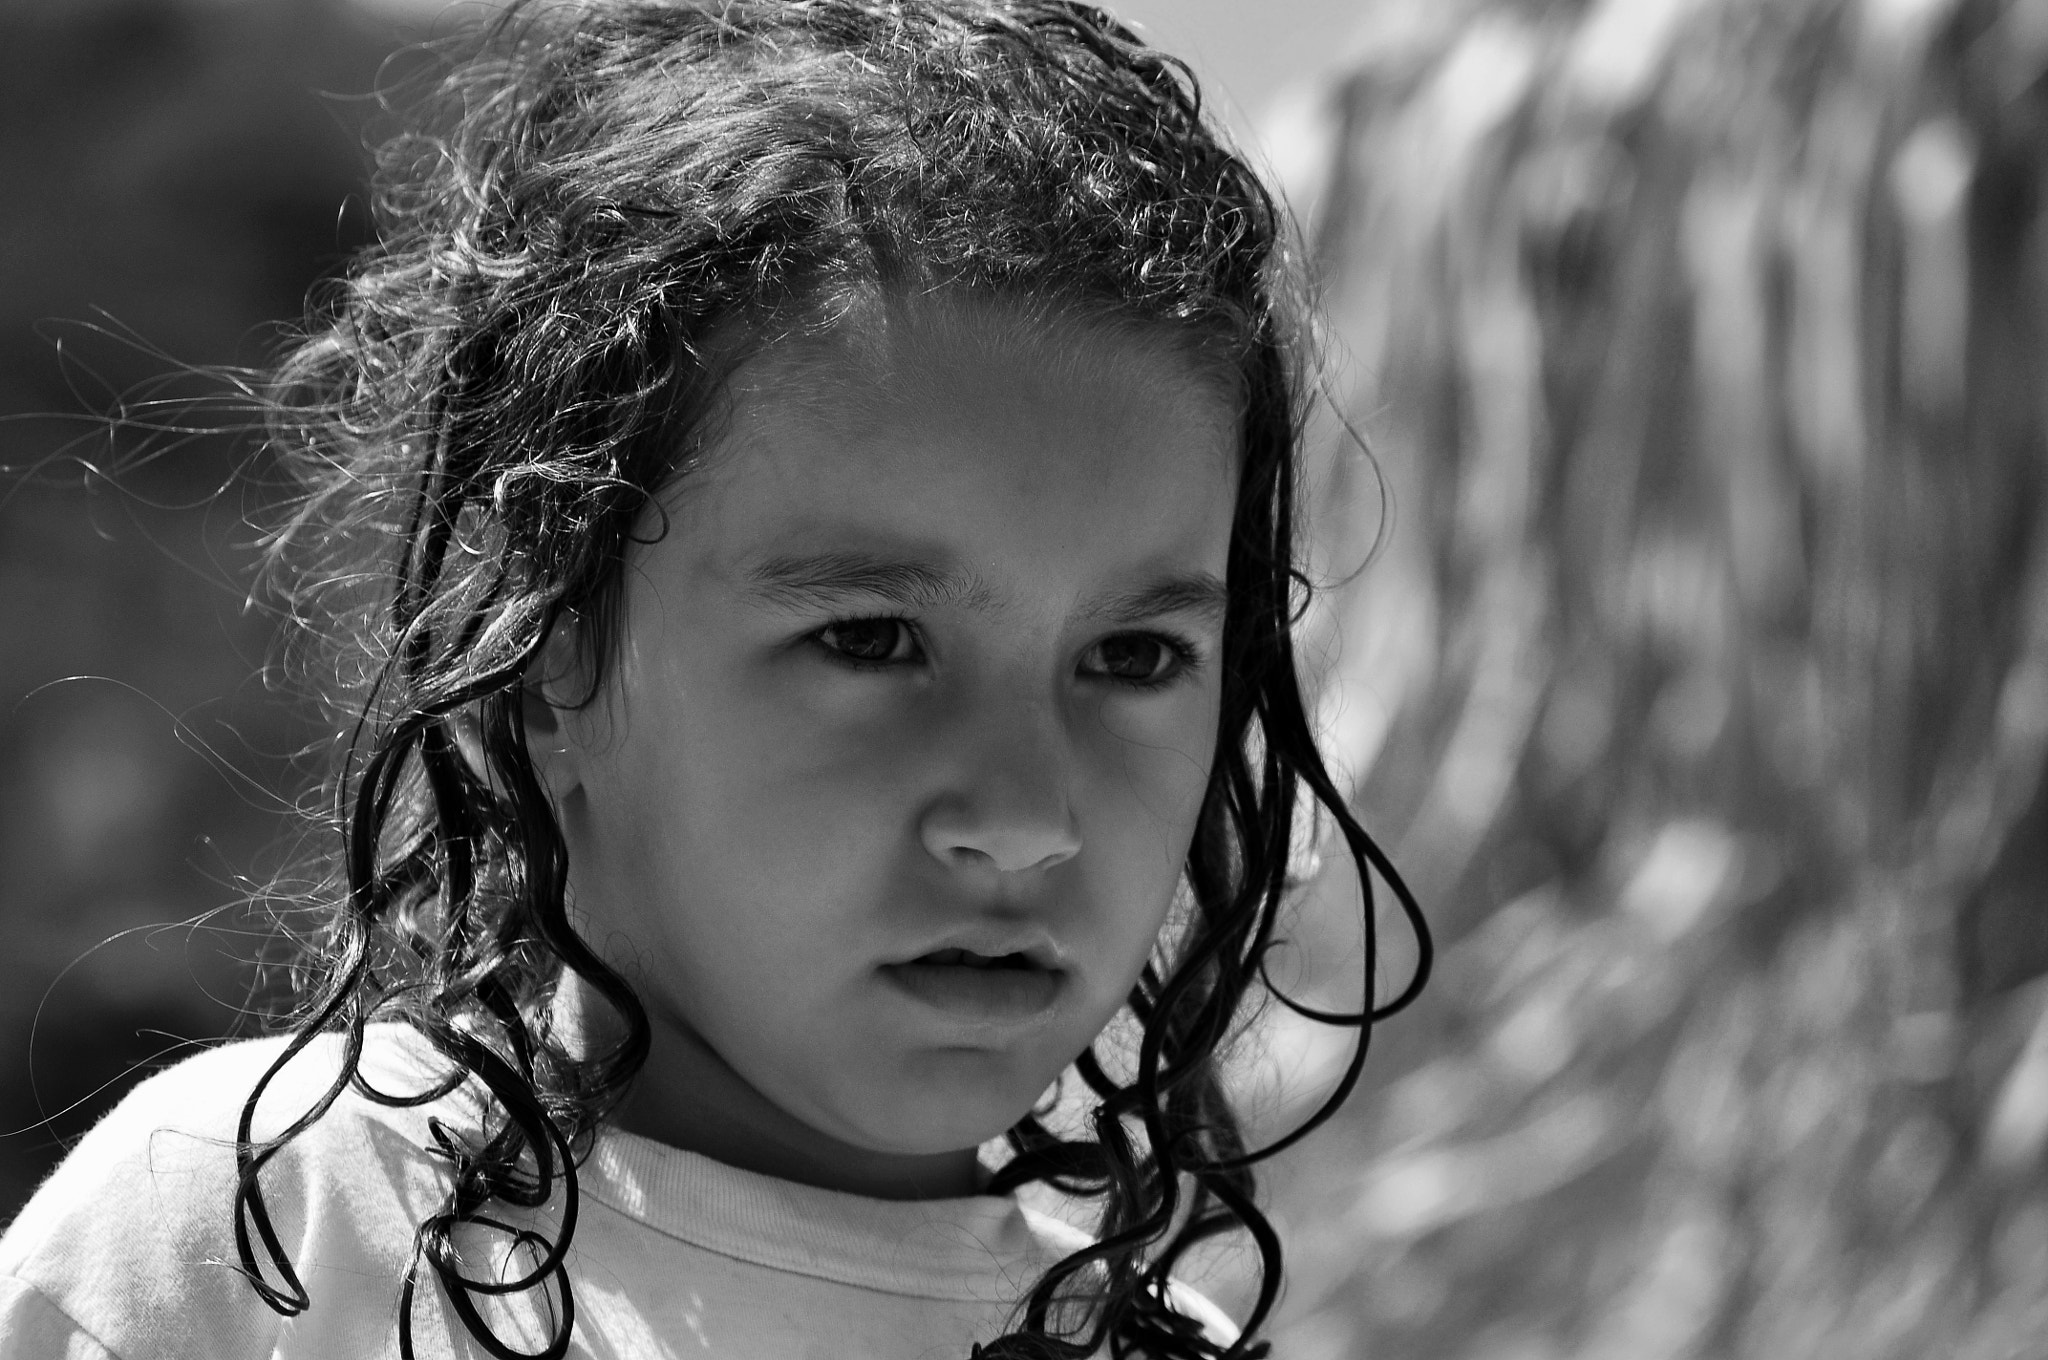 Photograph kid gazing by Giorgos Papathanasiou on 500px